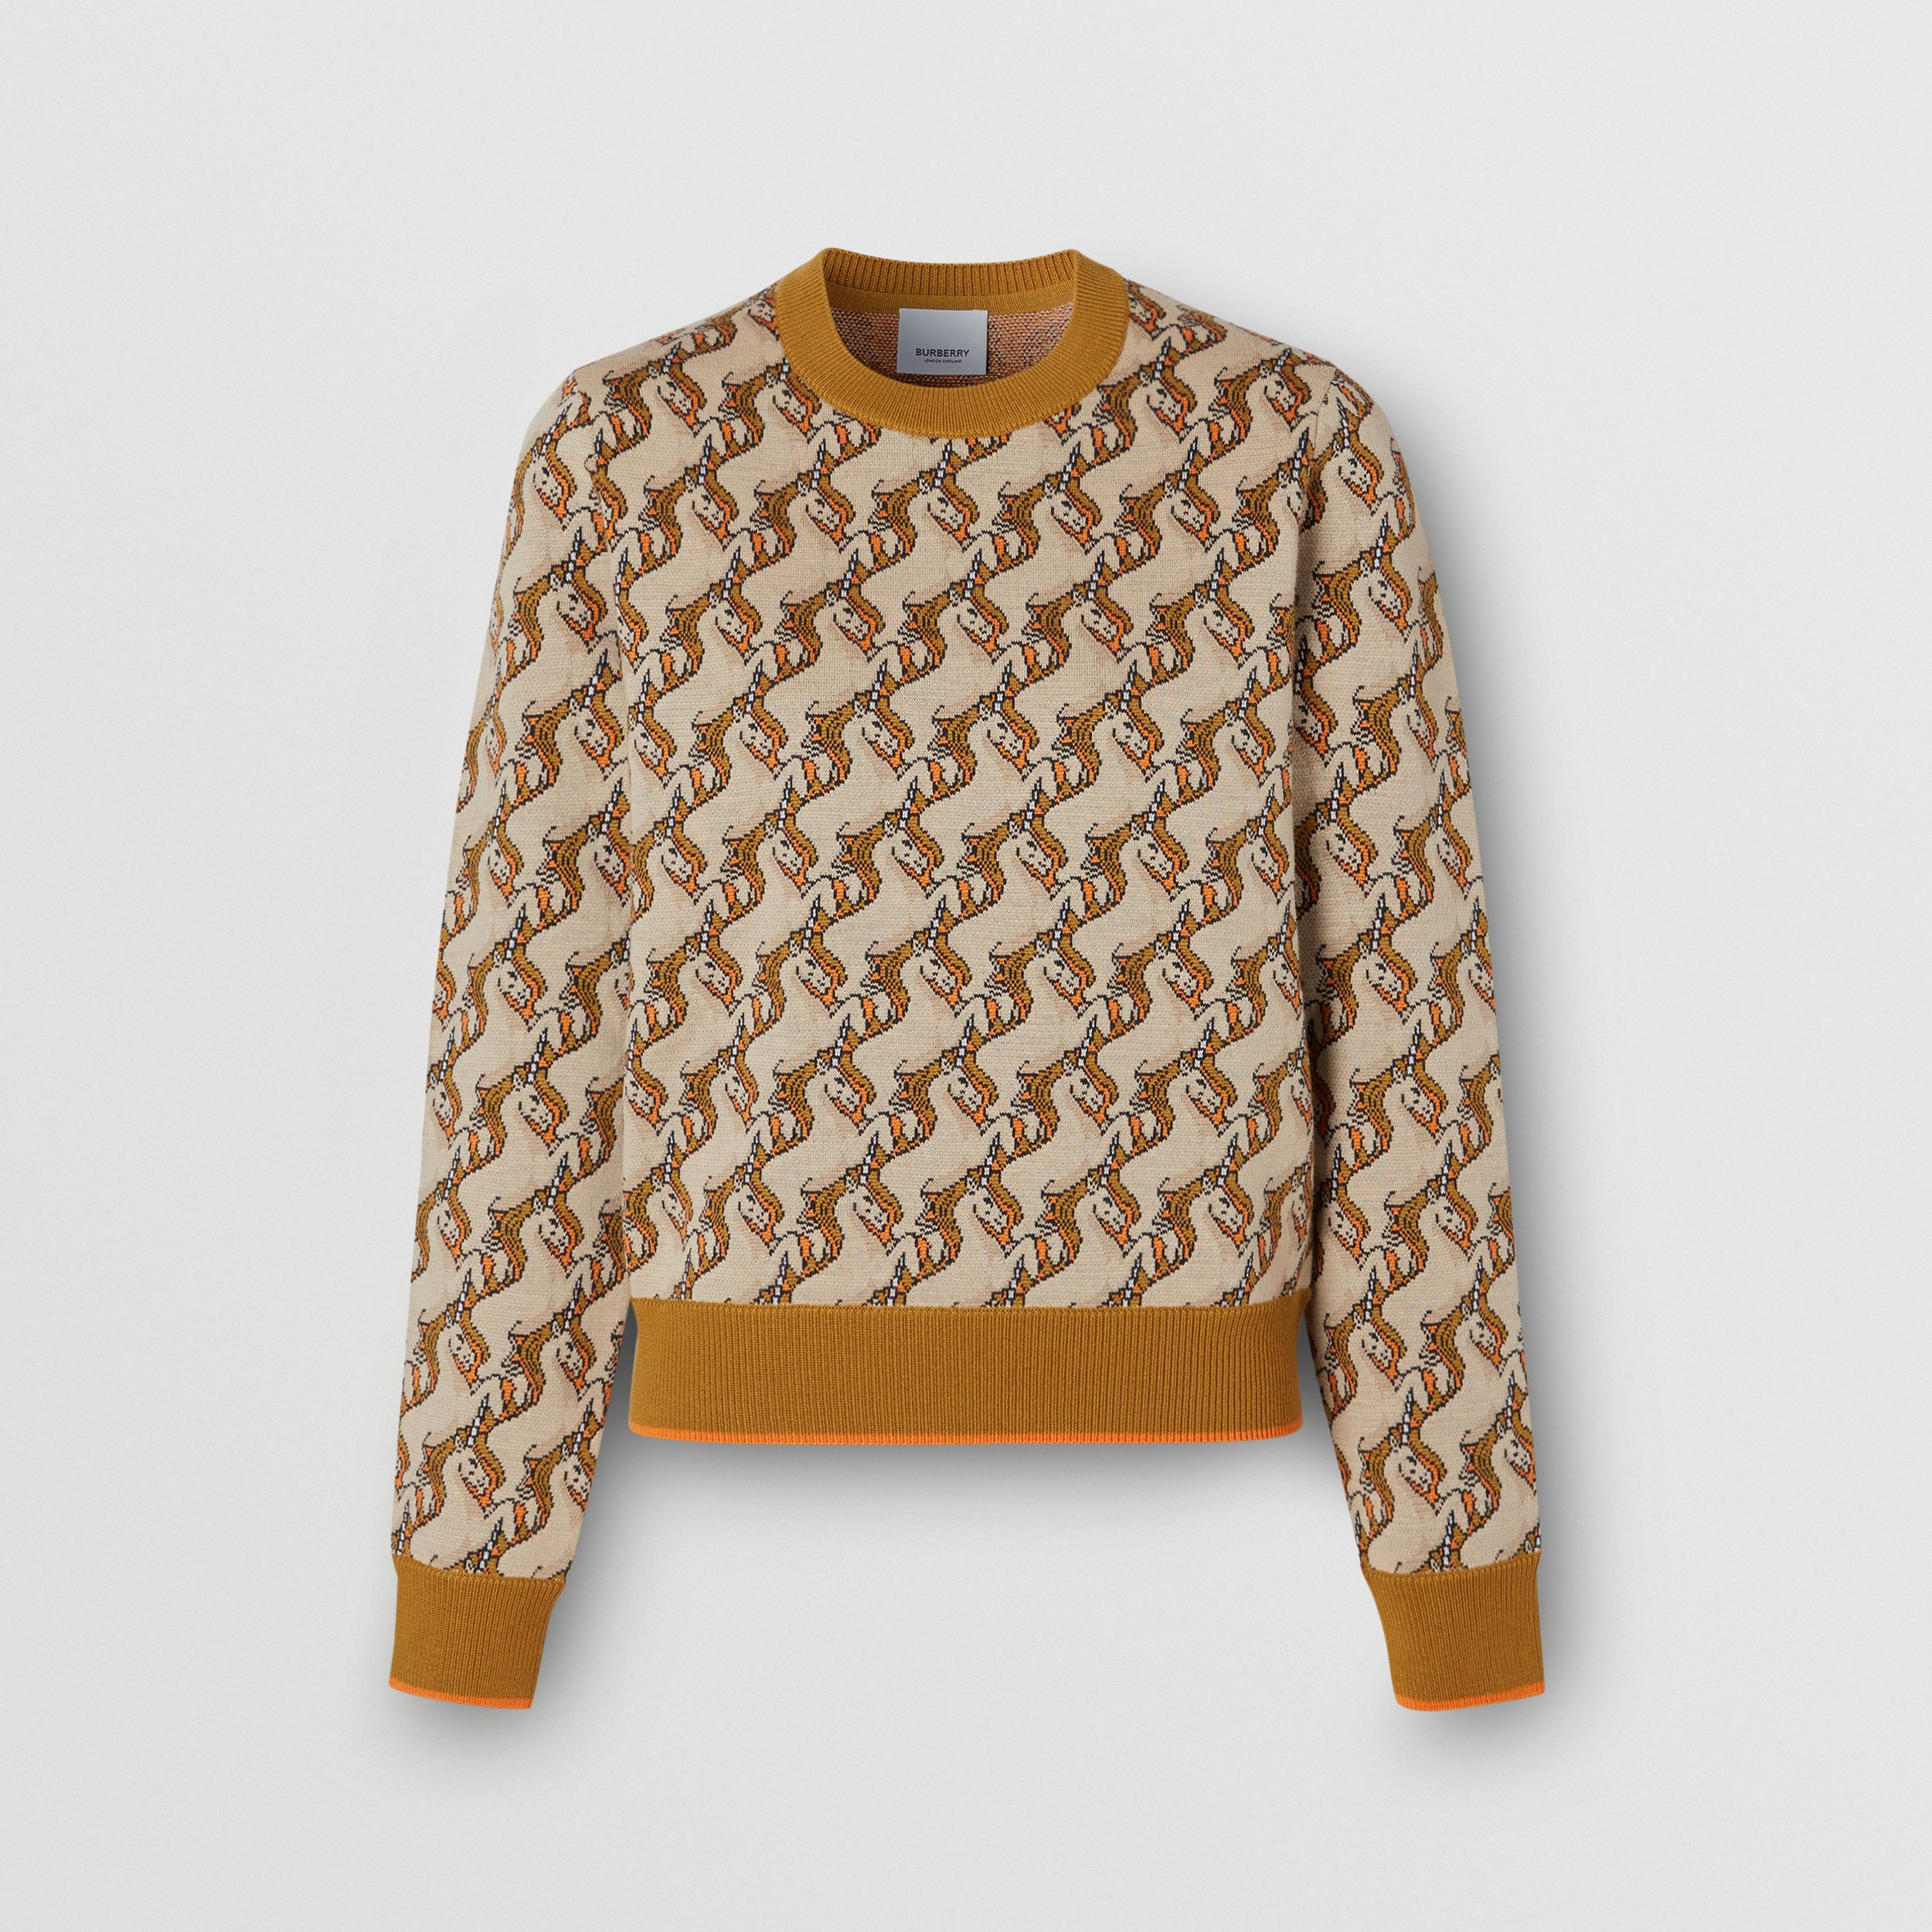 Unicorn Merino Wool Blend Jacquard Sweater in Ecru - Women | Burberry - 4